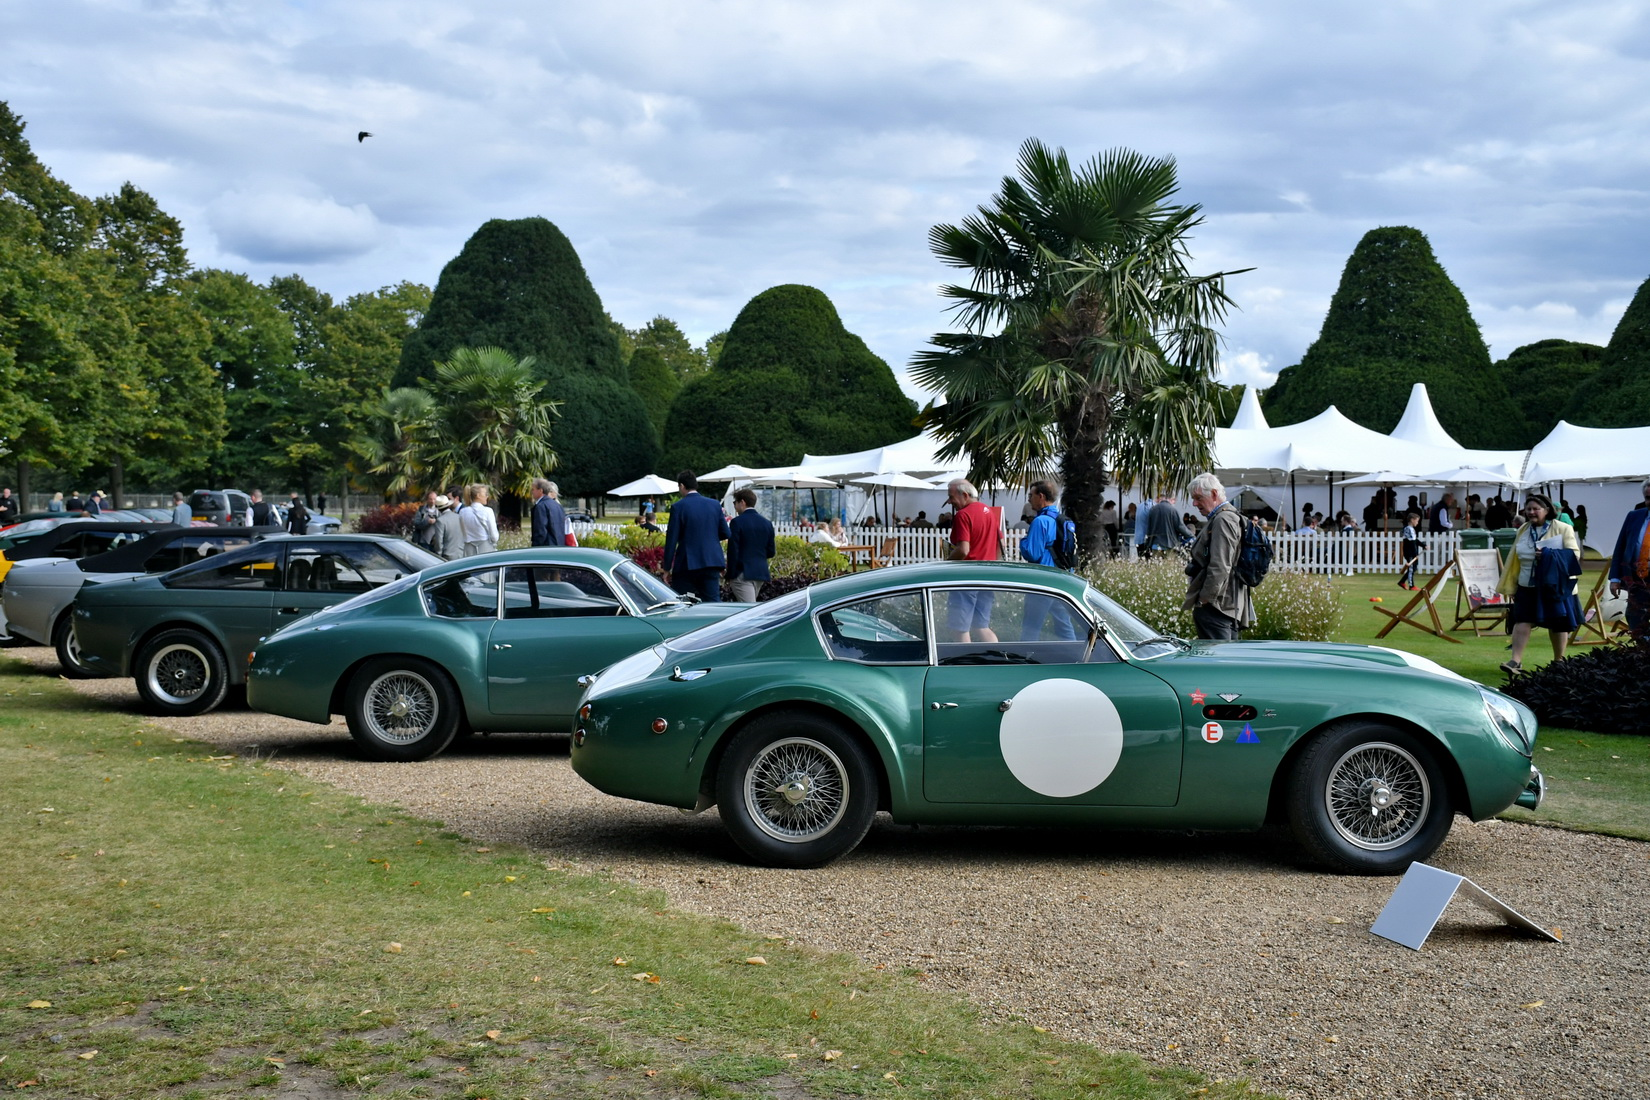 Two green Aston Martin DB4 GT Zagato from 1961 standing side by side